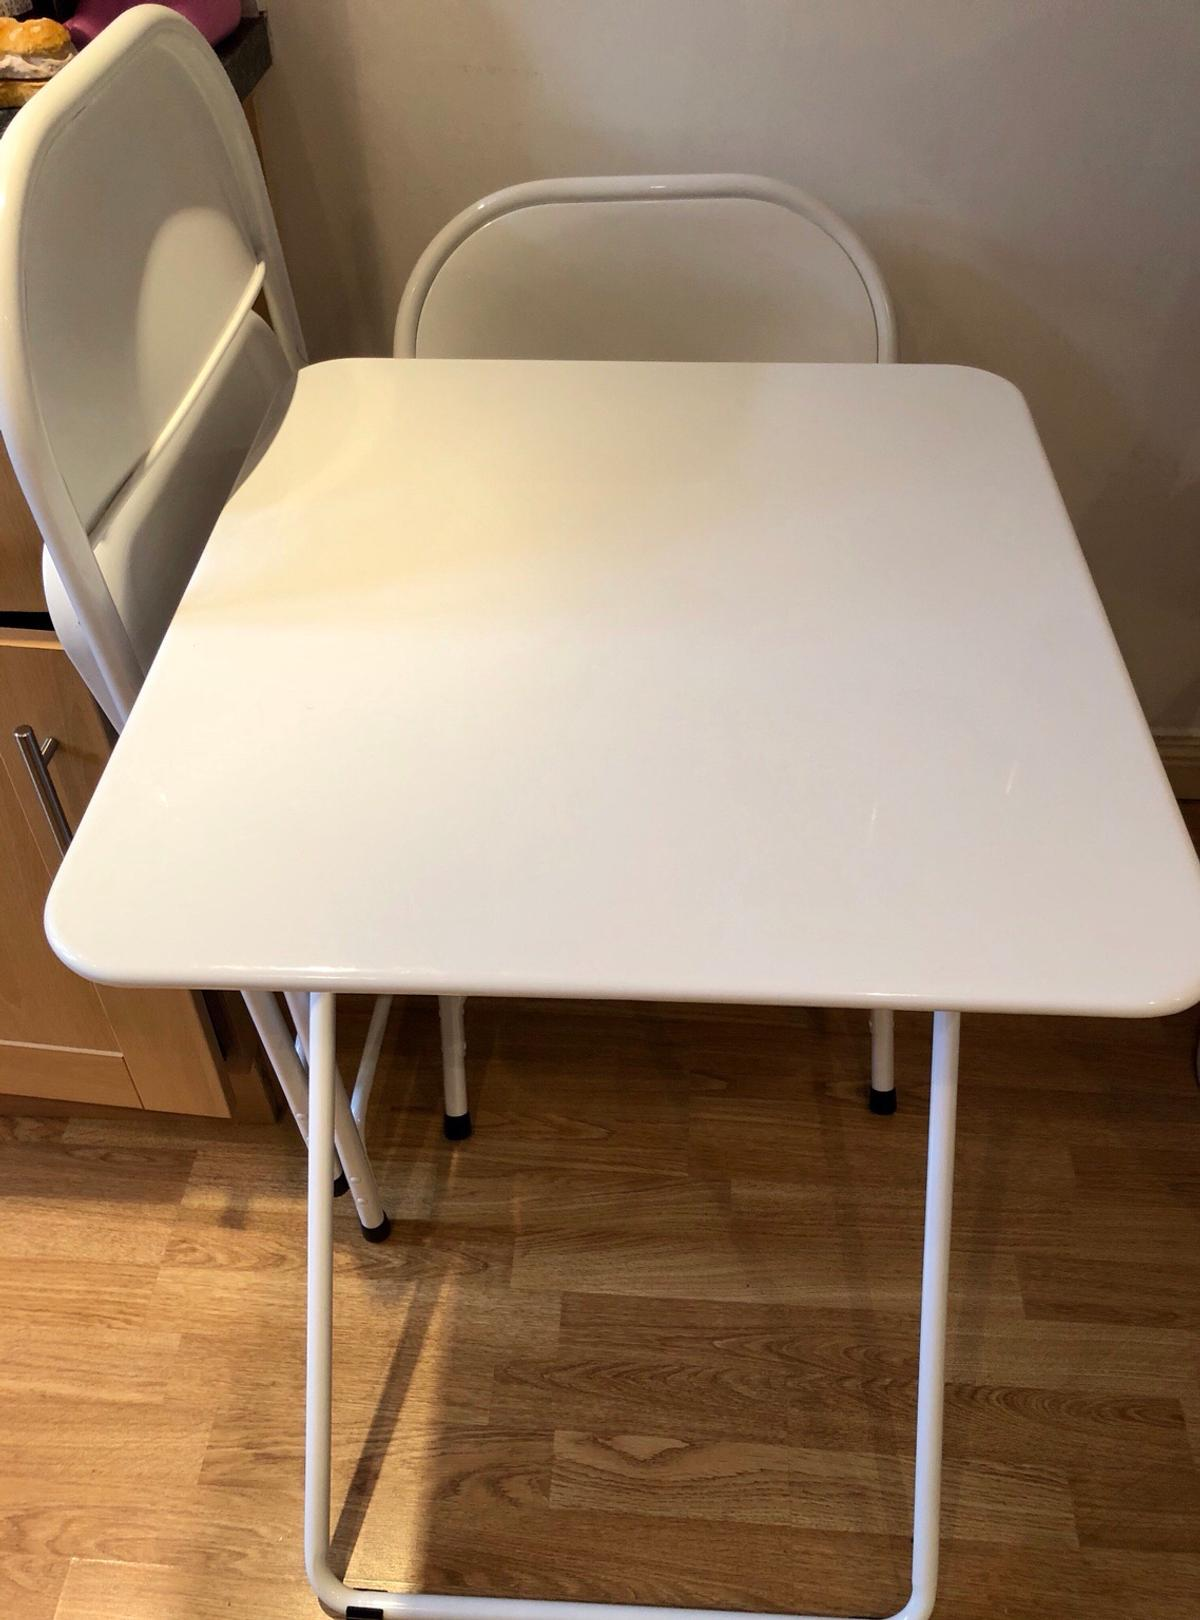 - Folding Habitat Dining Table + 2 Chairs Set In W2 Chelsea Für £ 40